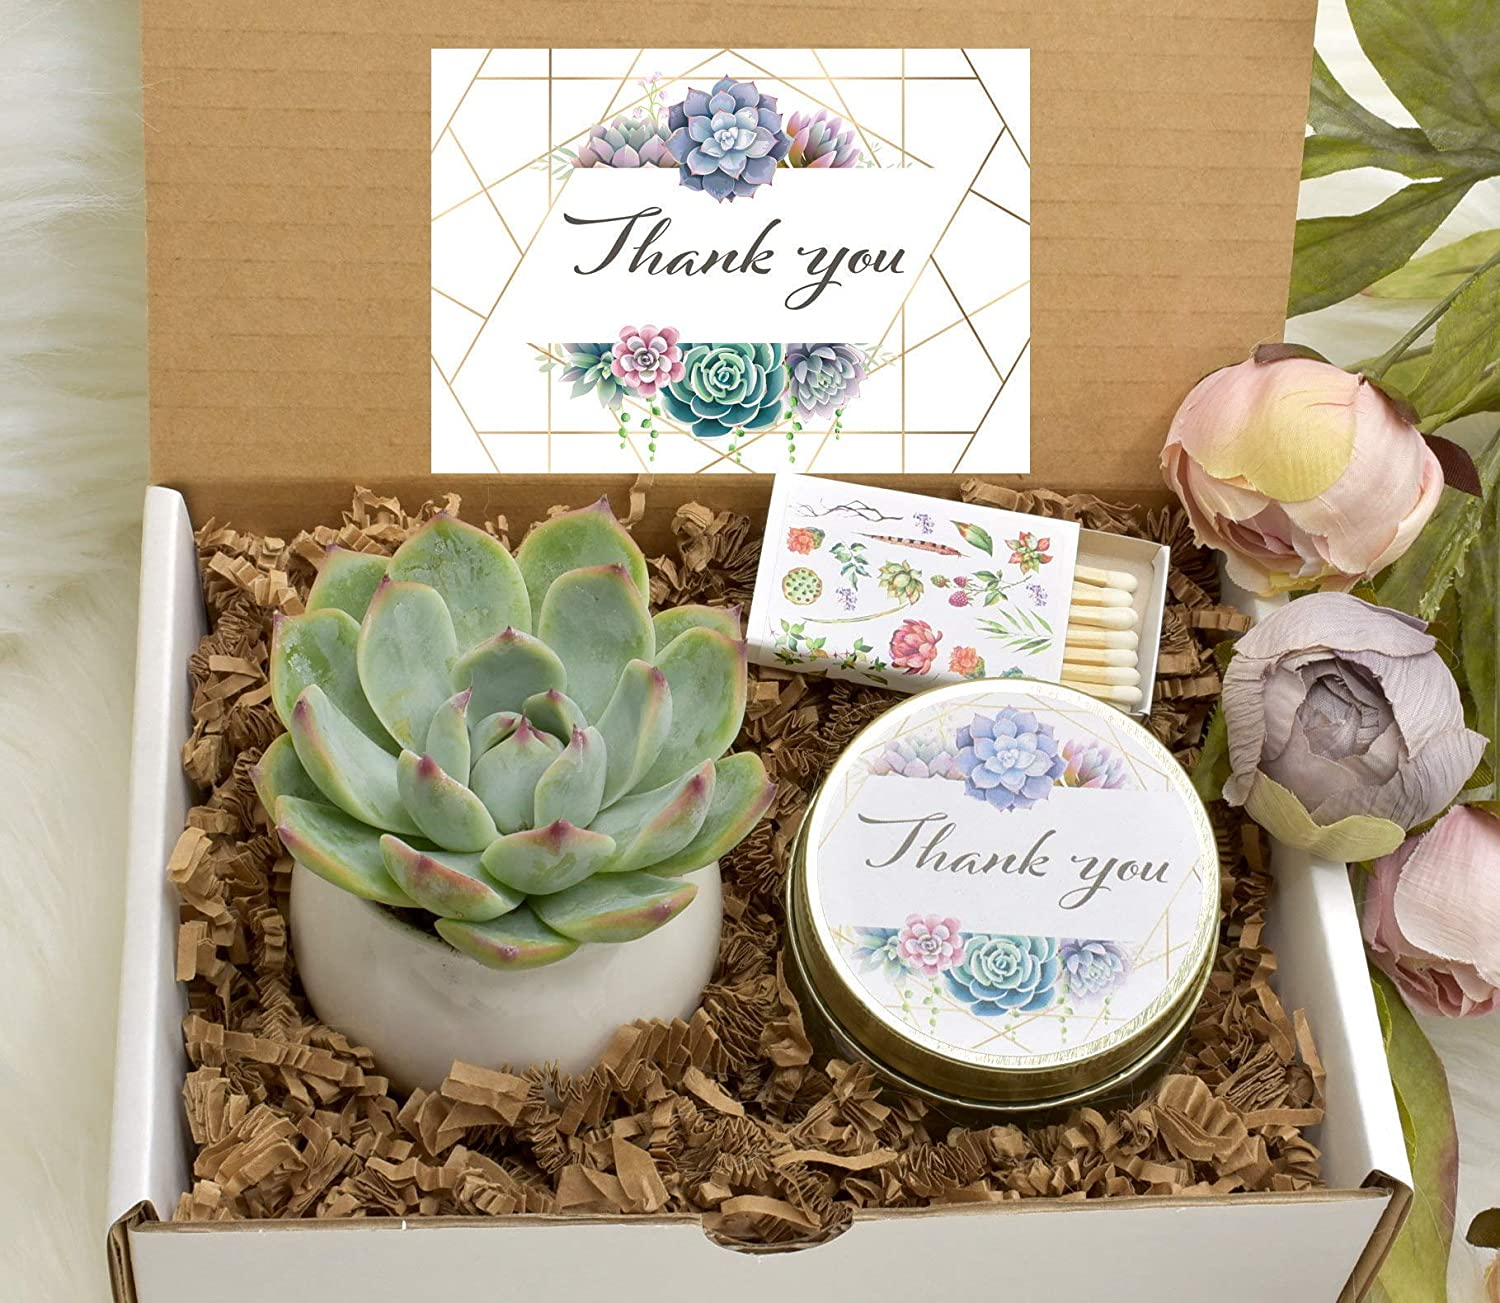 Boss Lady Gift Box Succulent Gift Box Birthday Gift For Boss Spa Gift Box Care Package Colleague Gift For Her Live Succulent Sympathy Gift